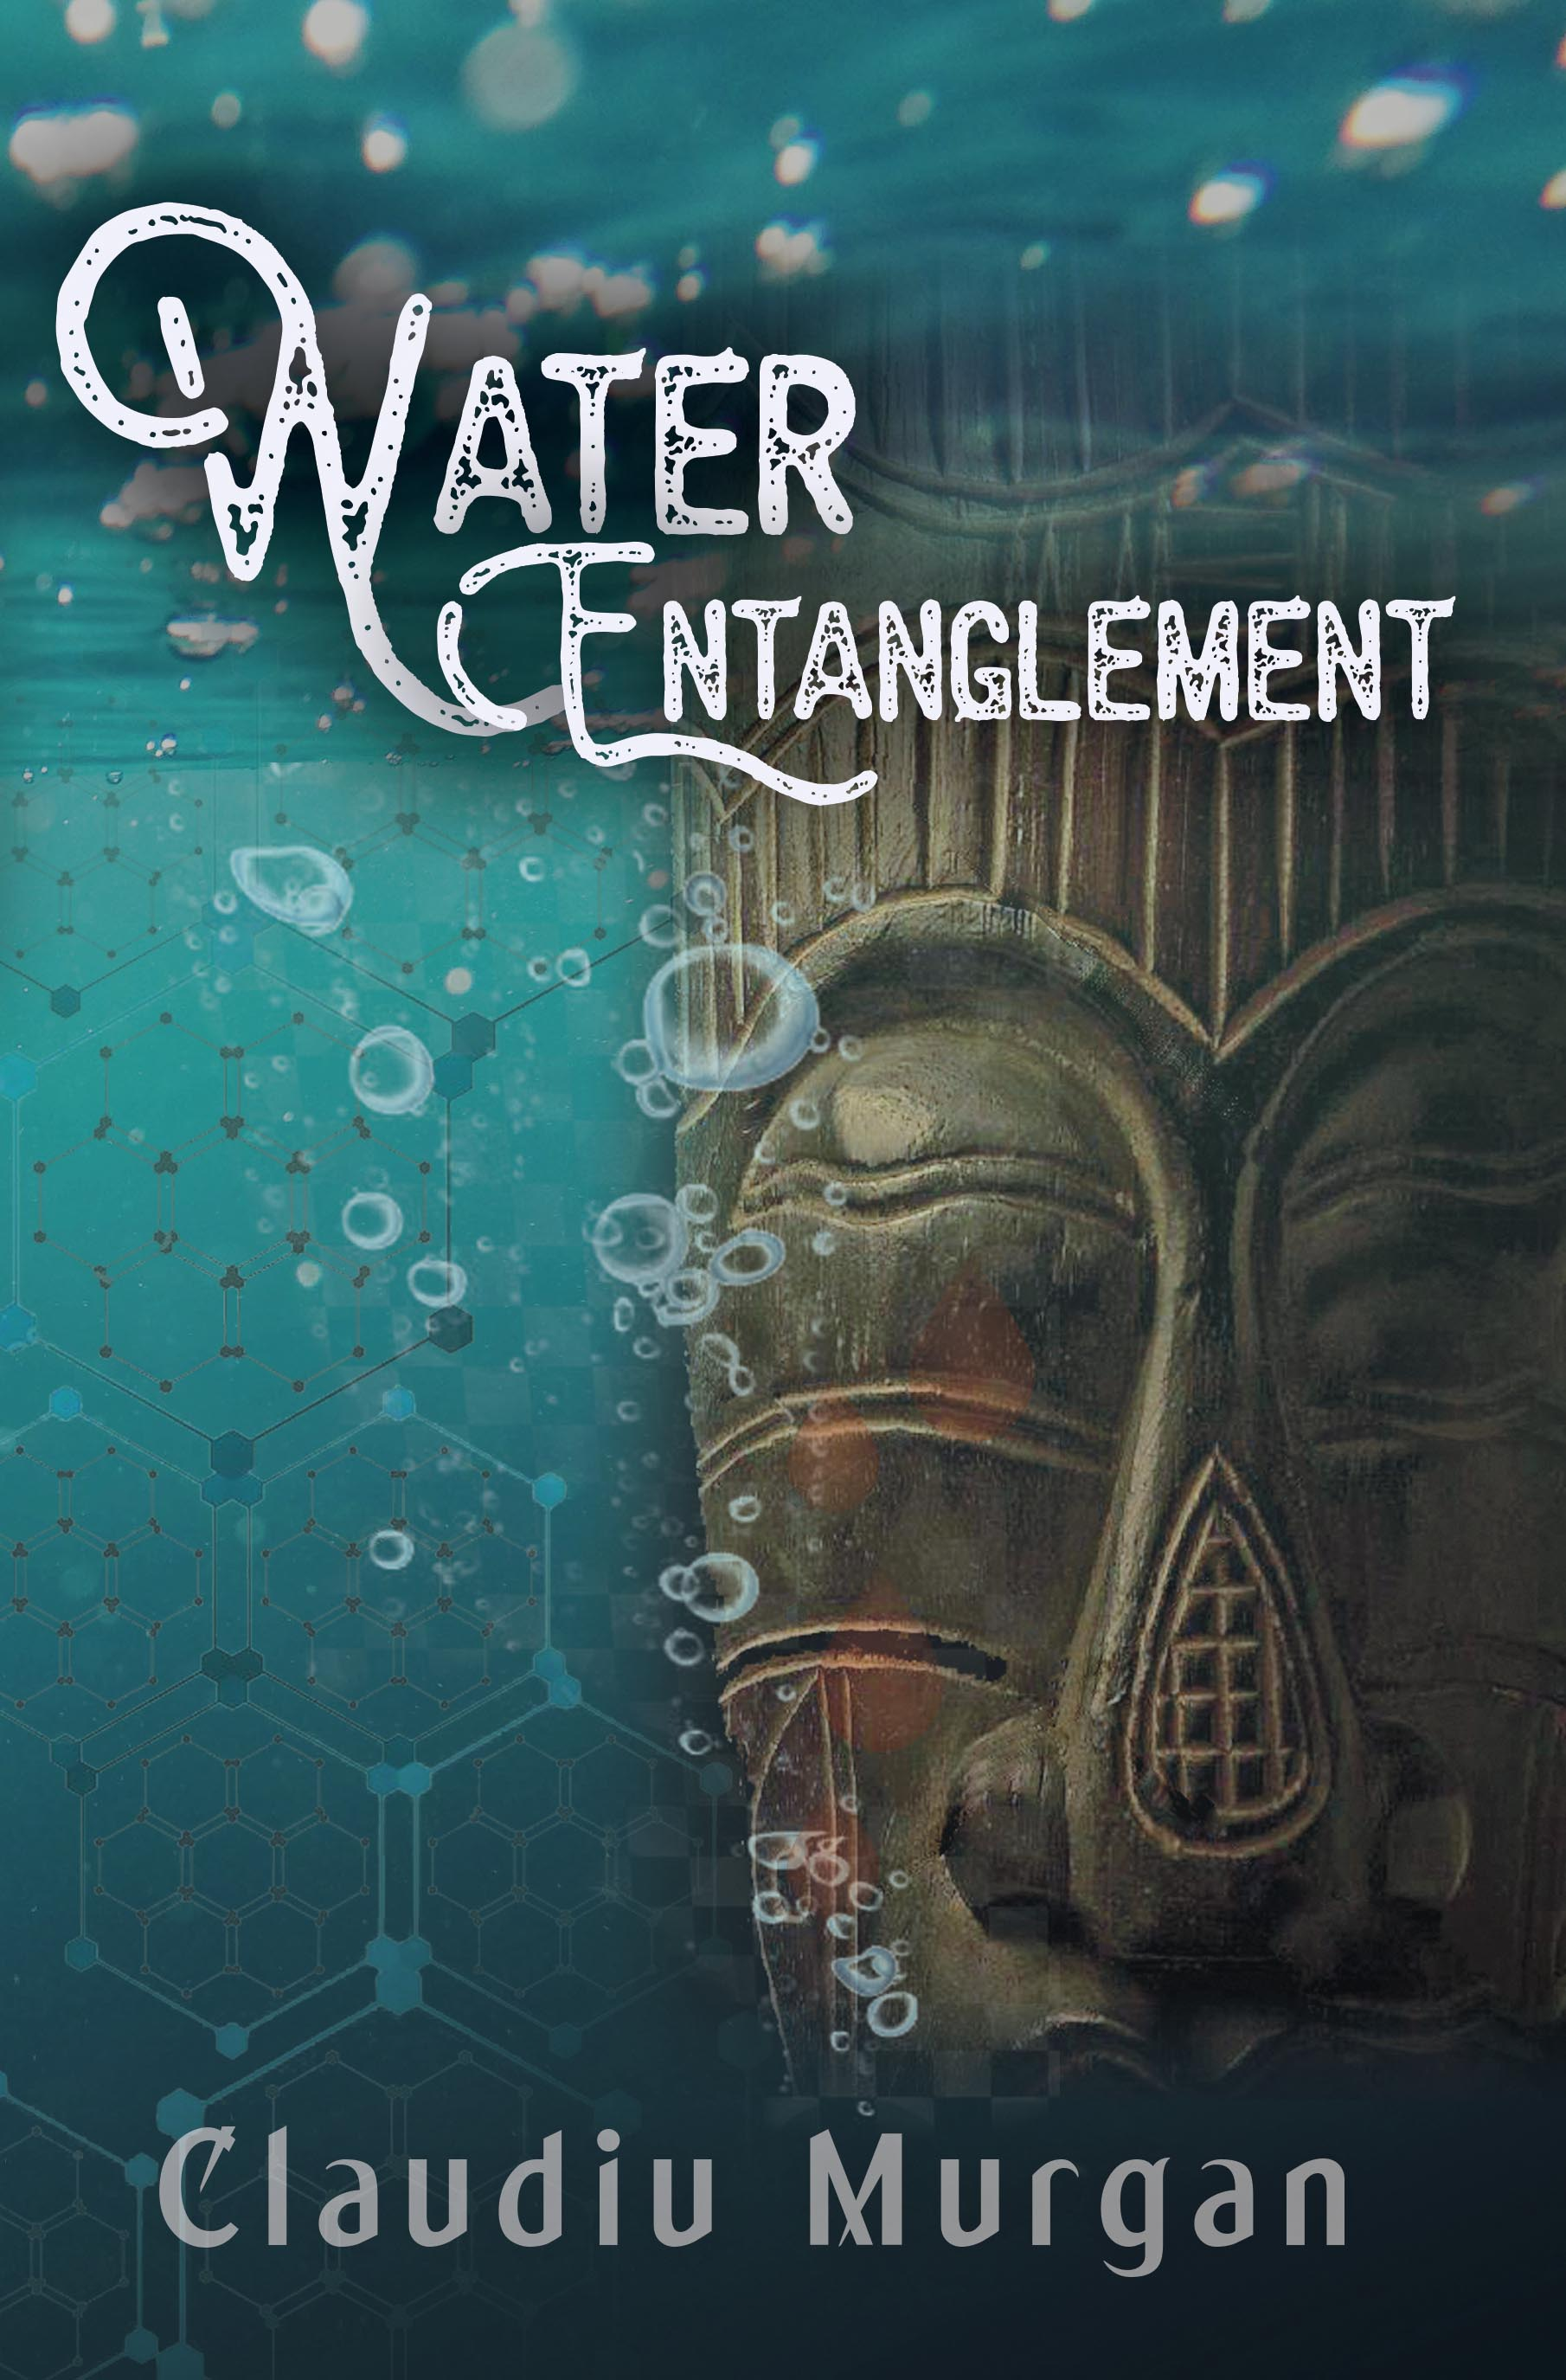 When Water Entangles: An Interview with Claudiu Murgan About Water